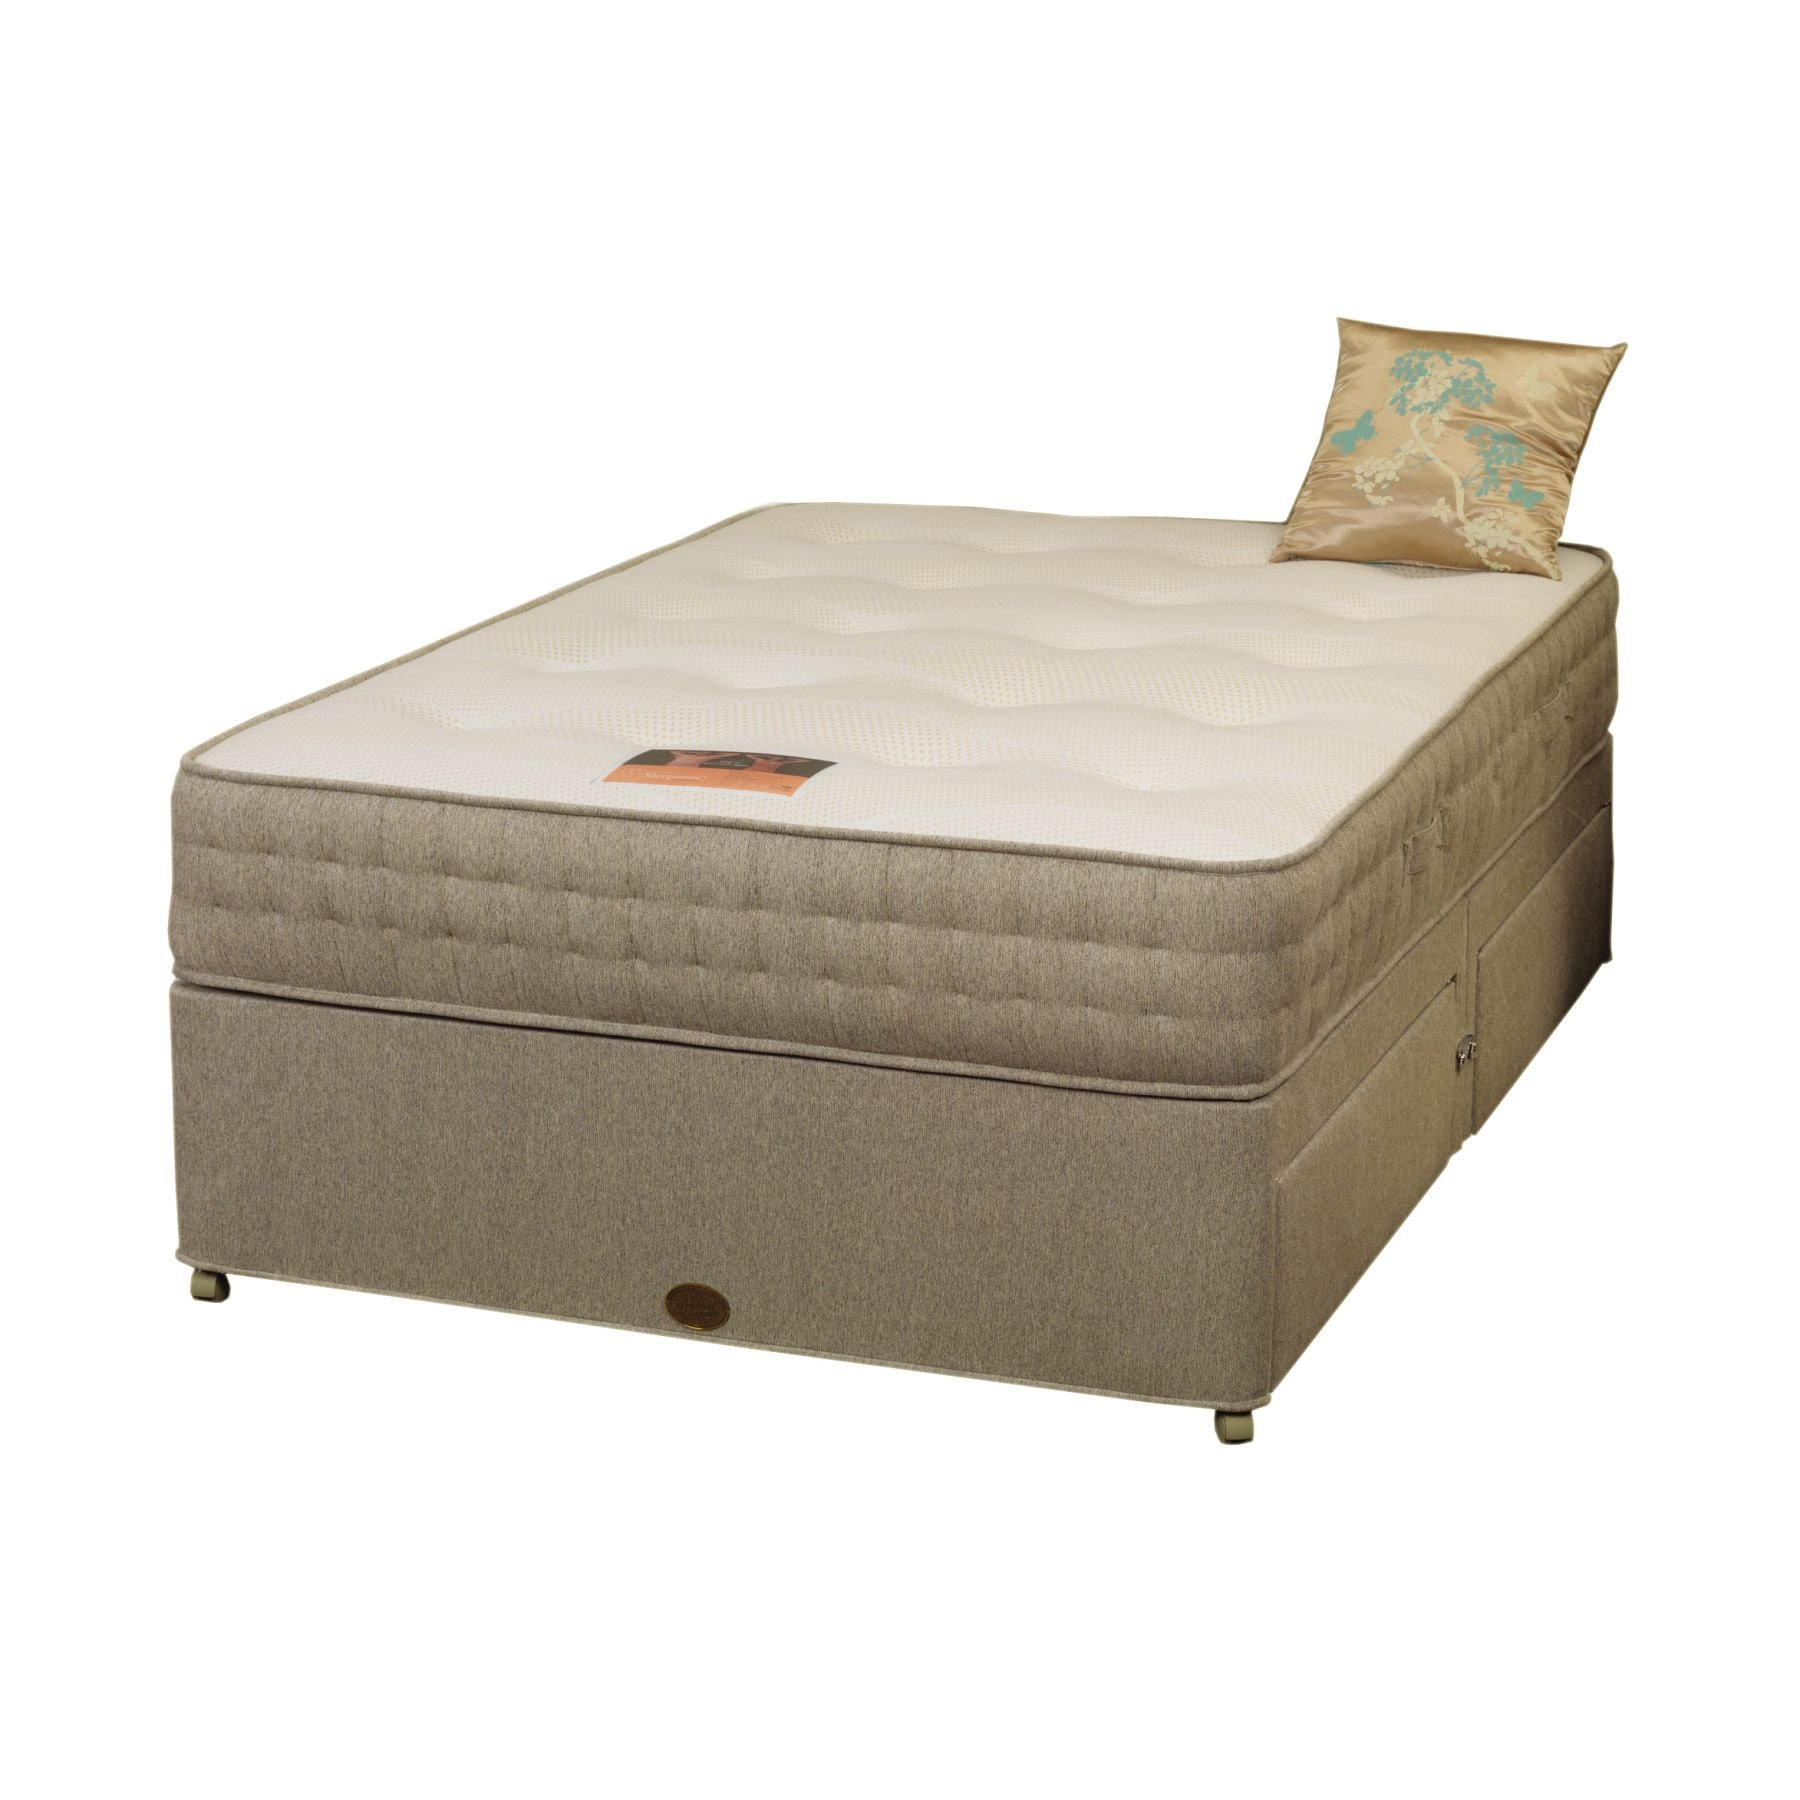 Dynasty divan base mattress for Divan bed base sale